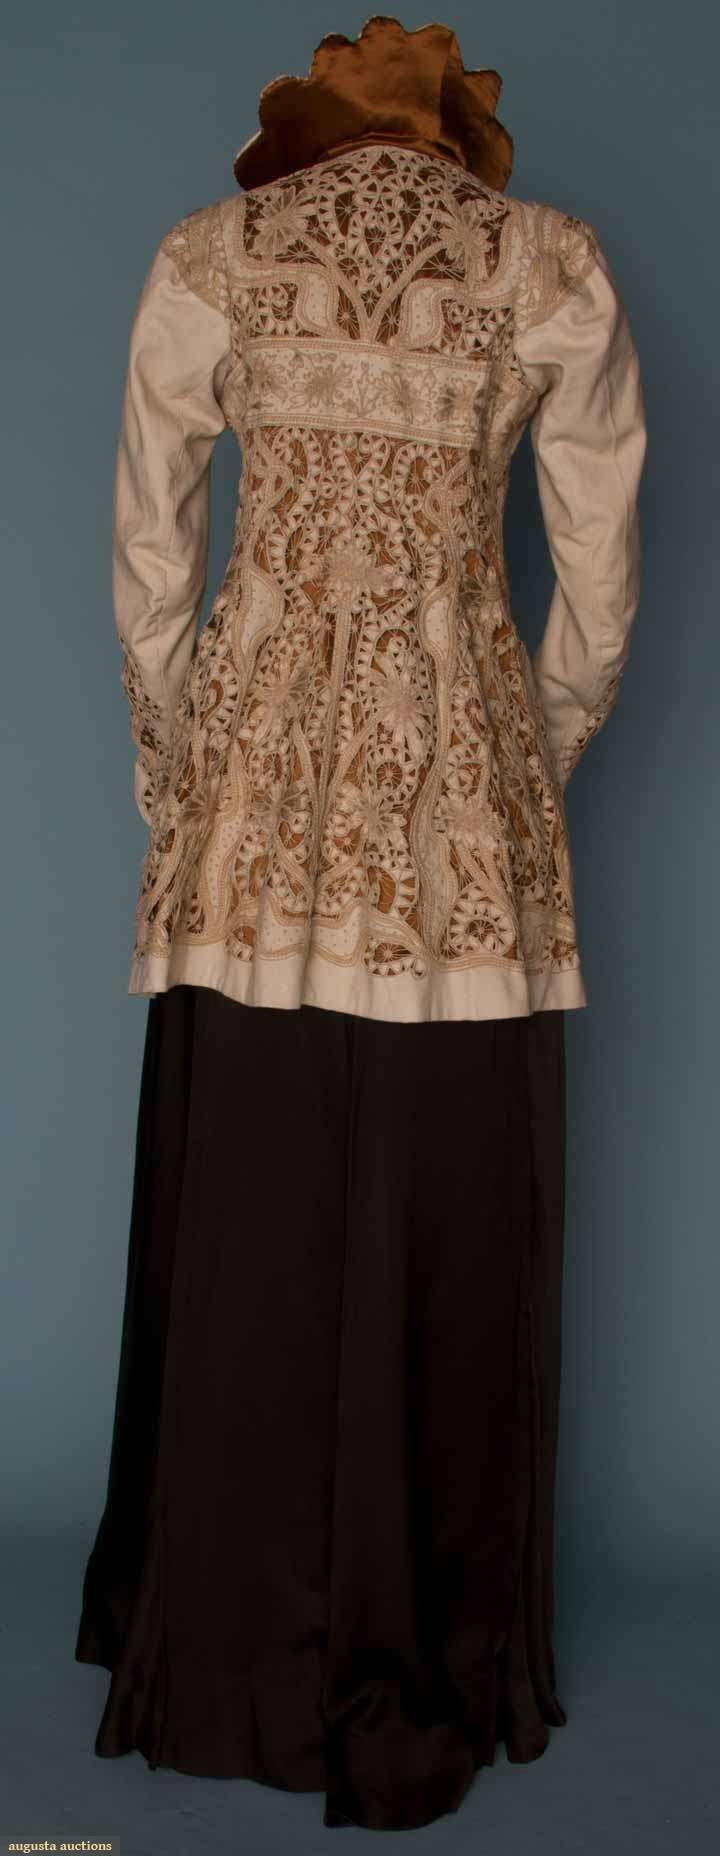 EMBROIDERED WHITE WOOL JACKET, c. 1908. Empire w/ cutwork & embroidery in serpentine & floral pattern, lavishly embroidered flowers, scalloped collar, cocoa brown silk lining. Back